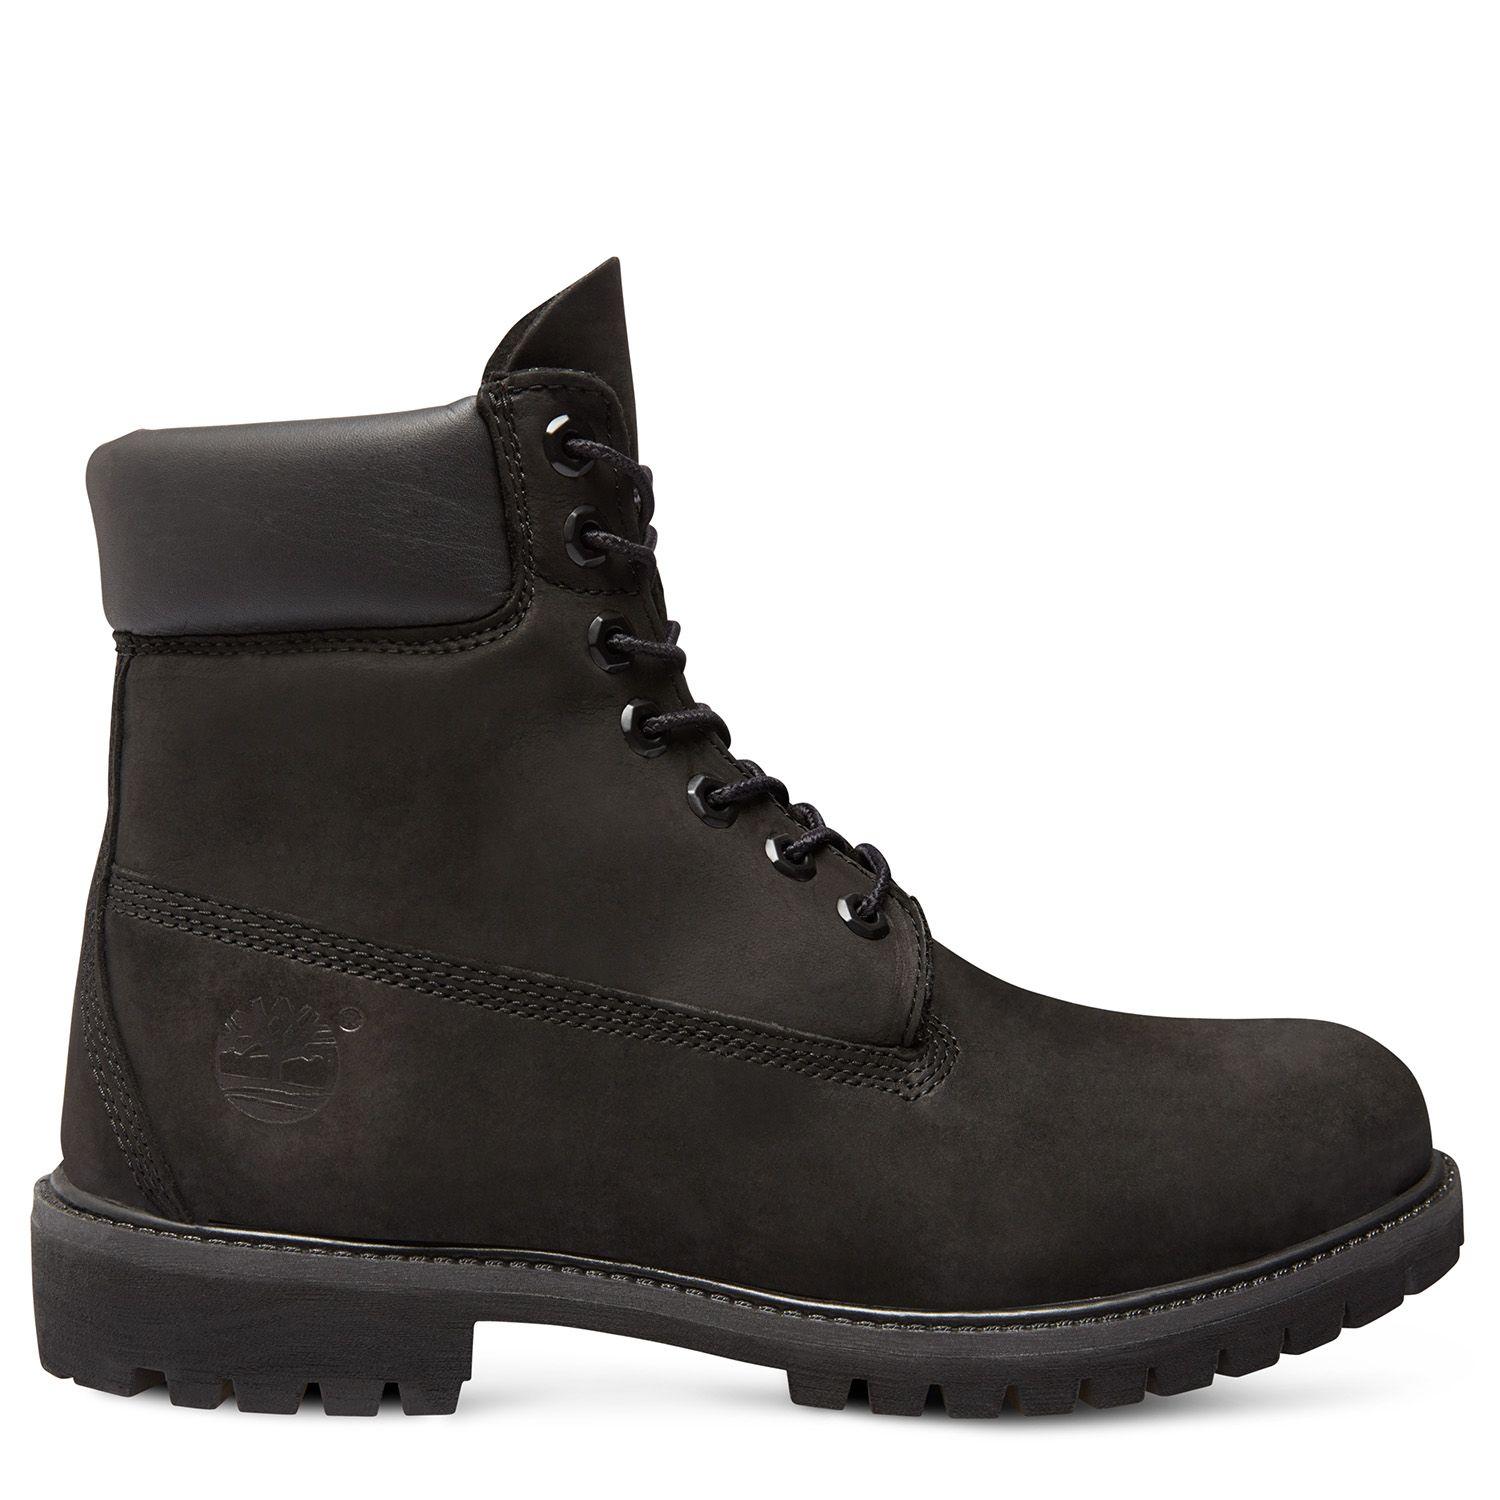 men's timberland 6 inch boots black